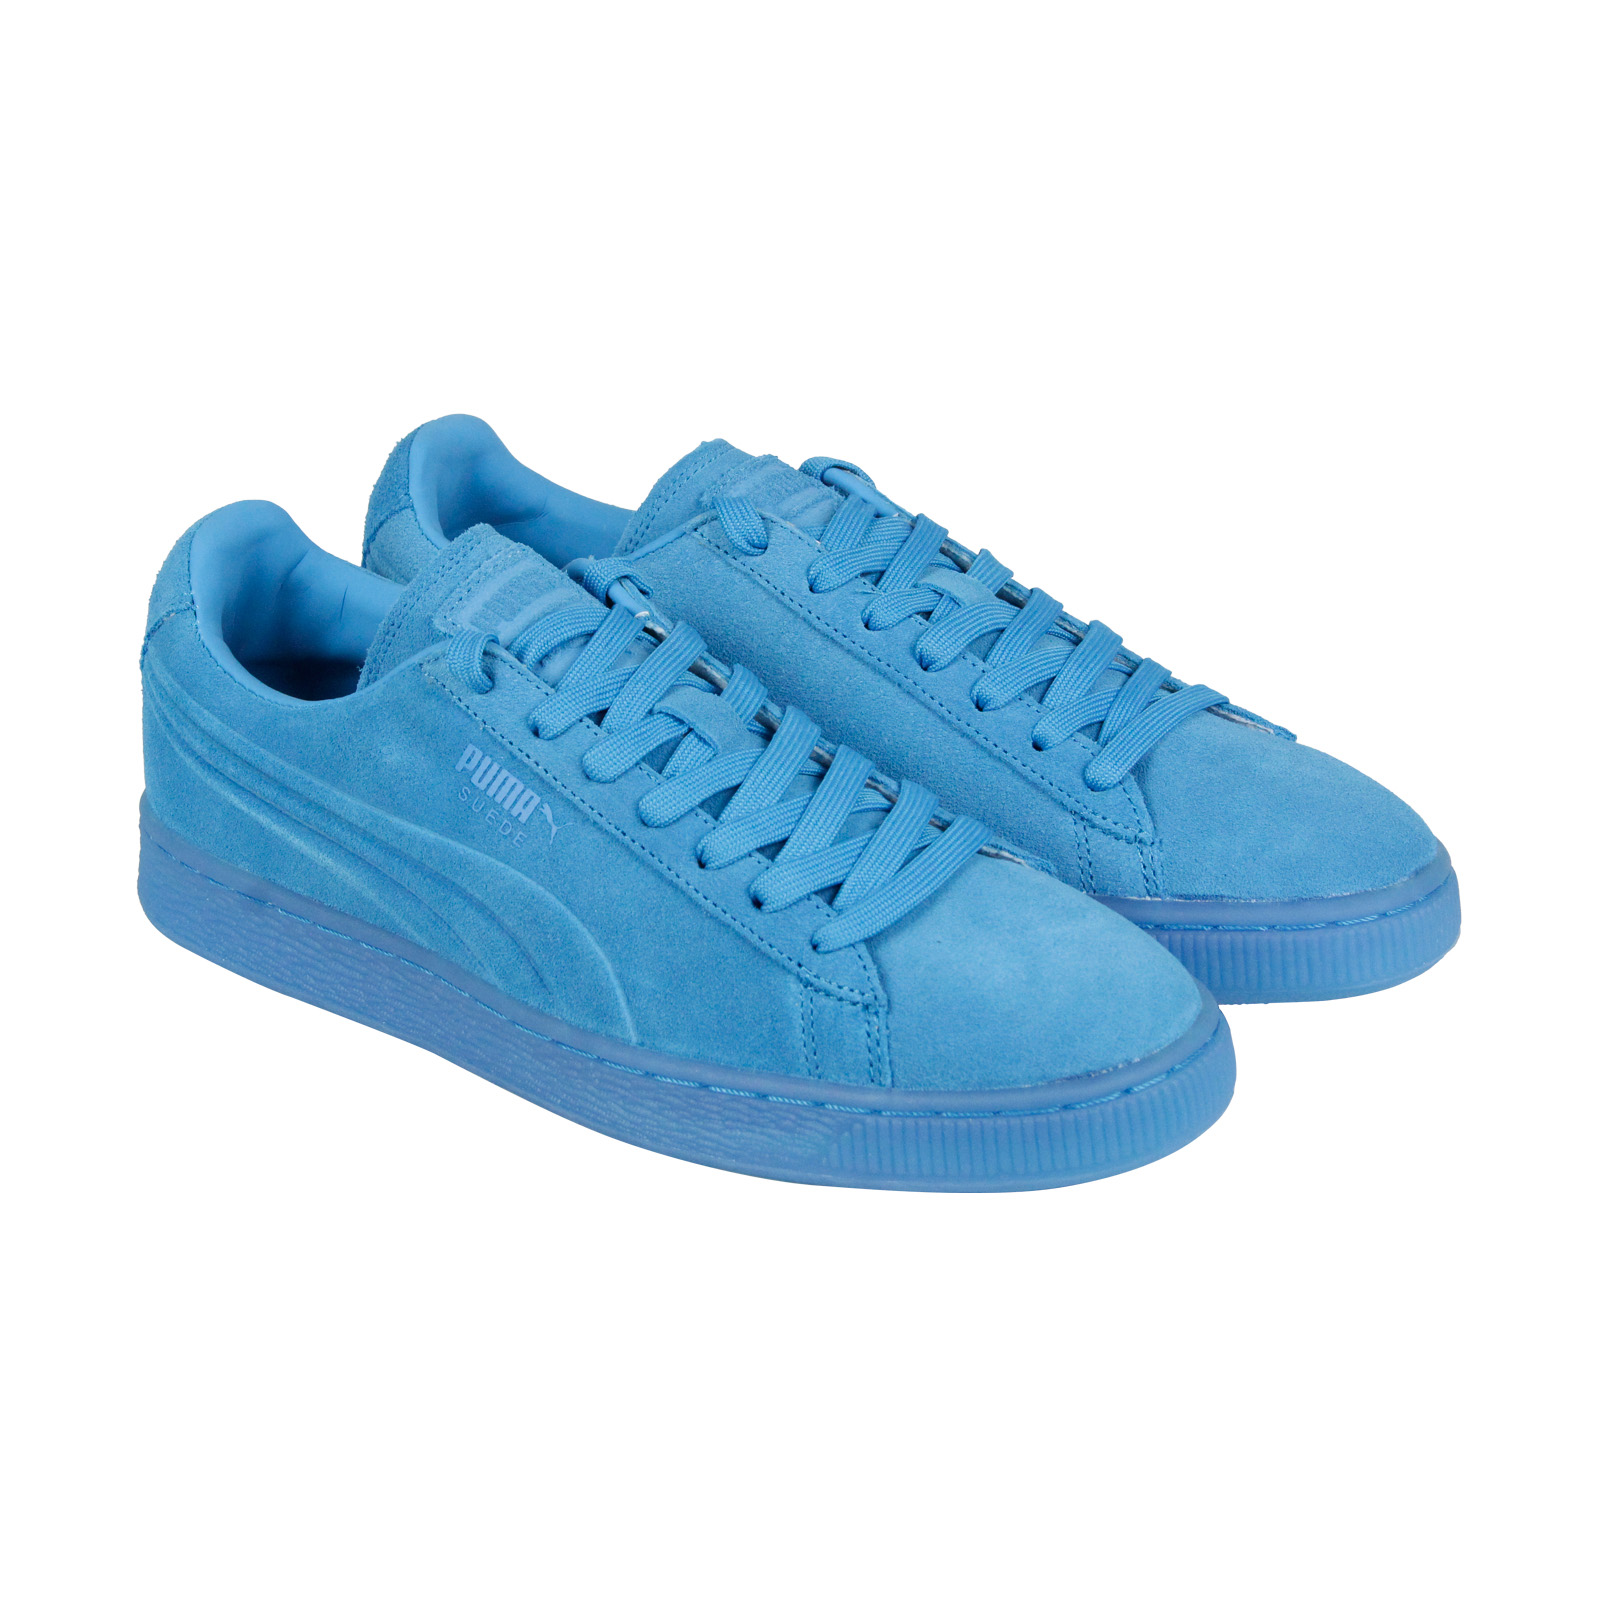 Puma Emboss Splatter Fluo Mens Blue Suede Lace Up Sneakers Shoes 10 Cheap and beautiful fashion